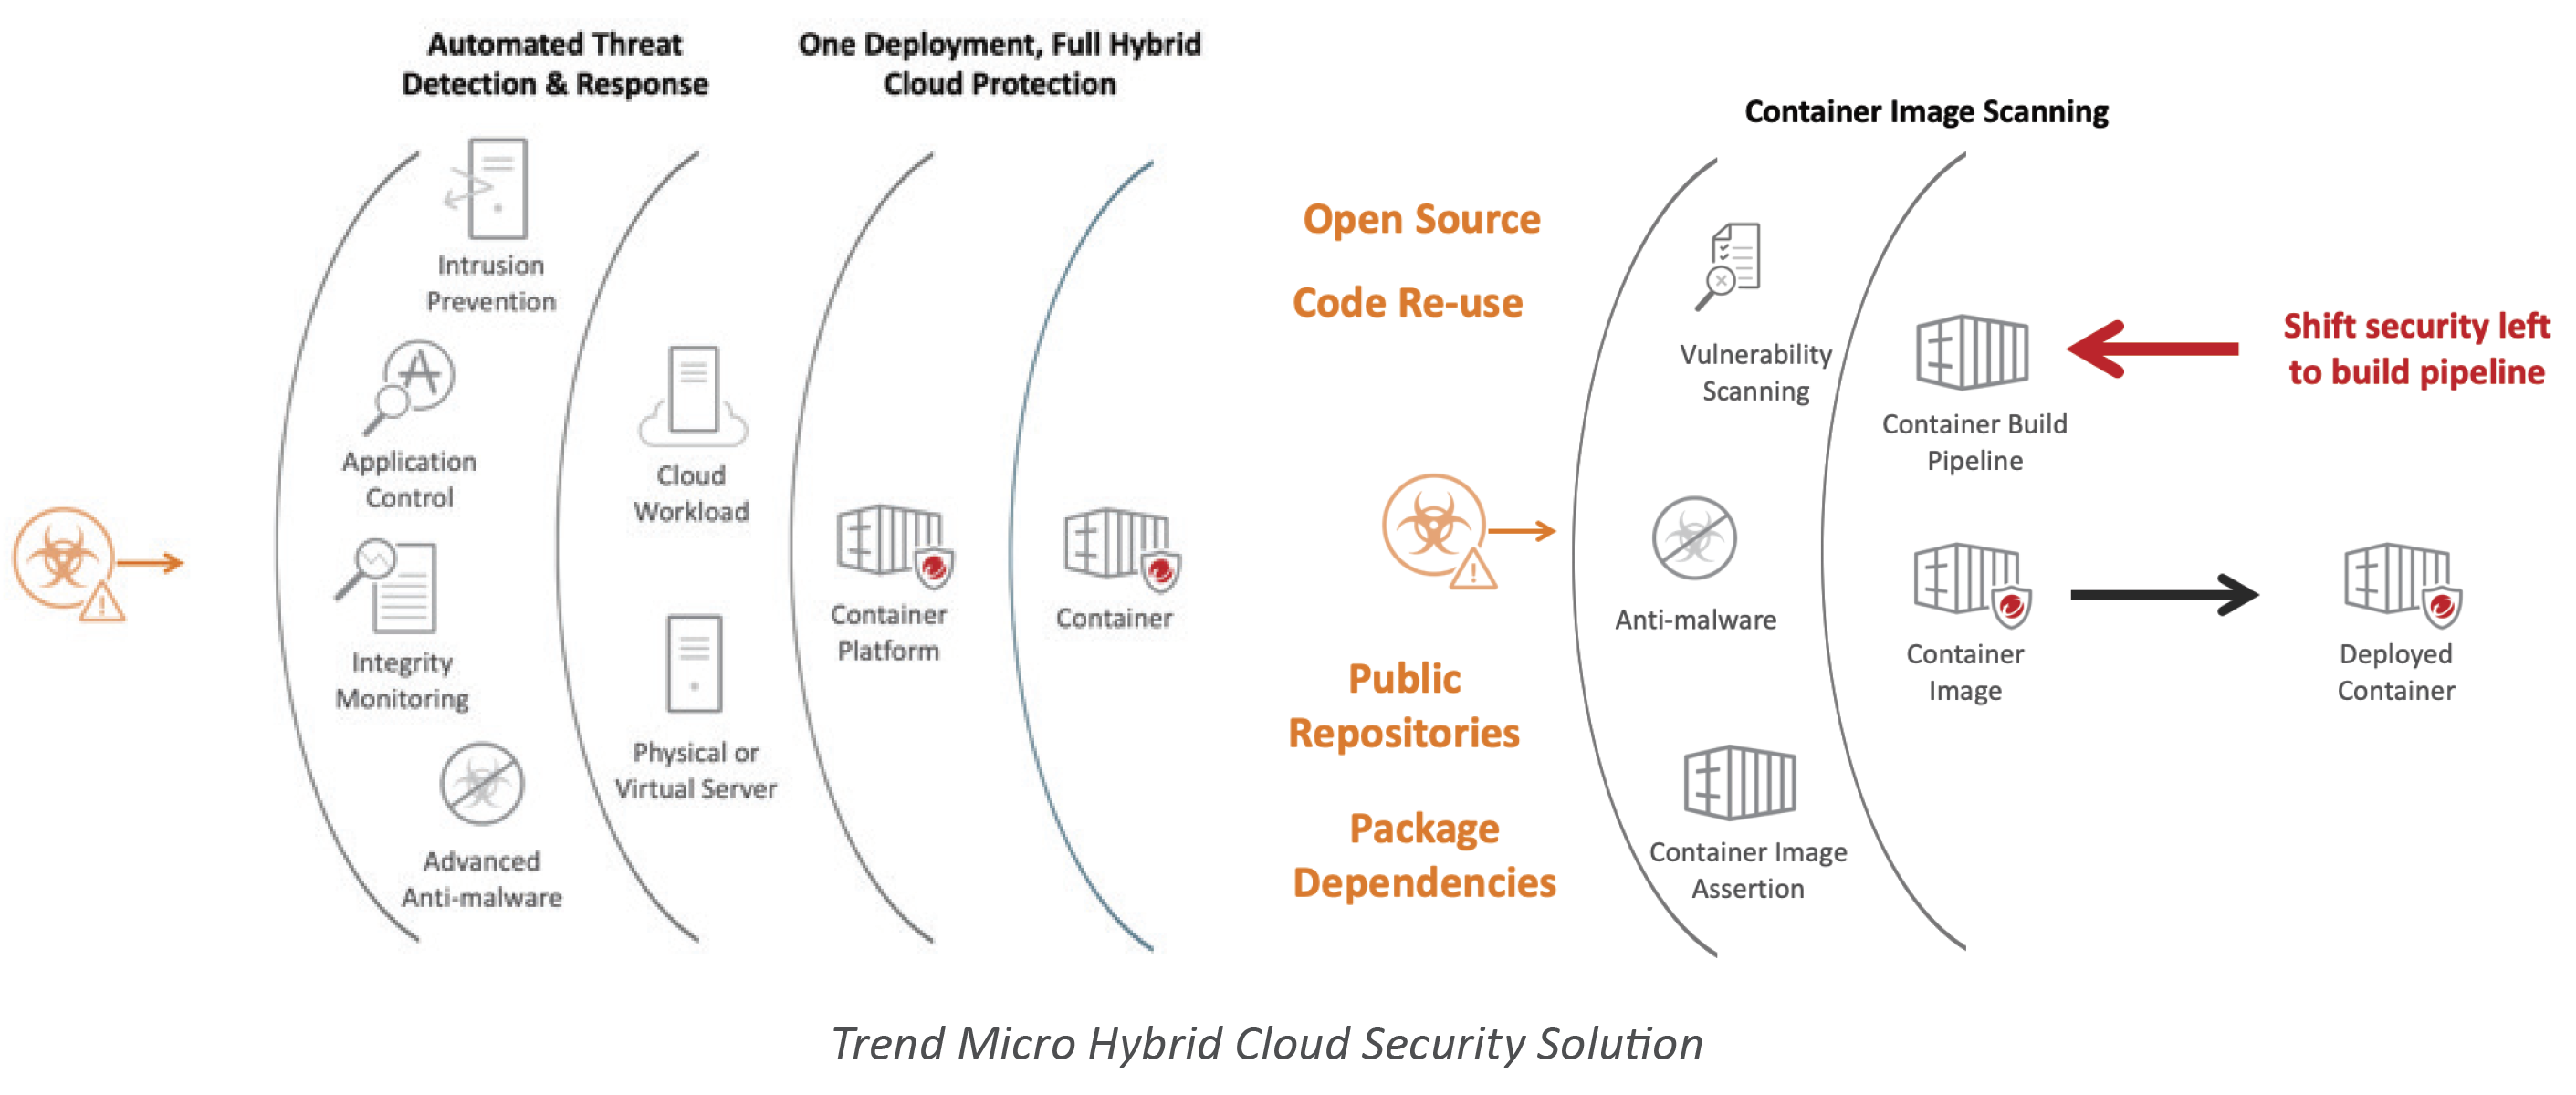 Trend Micro Hybrid Cloud Security Solution